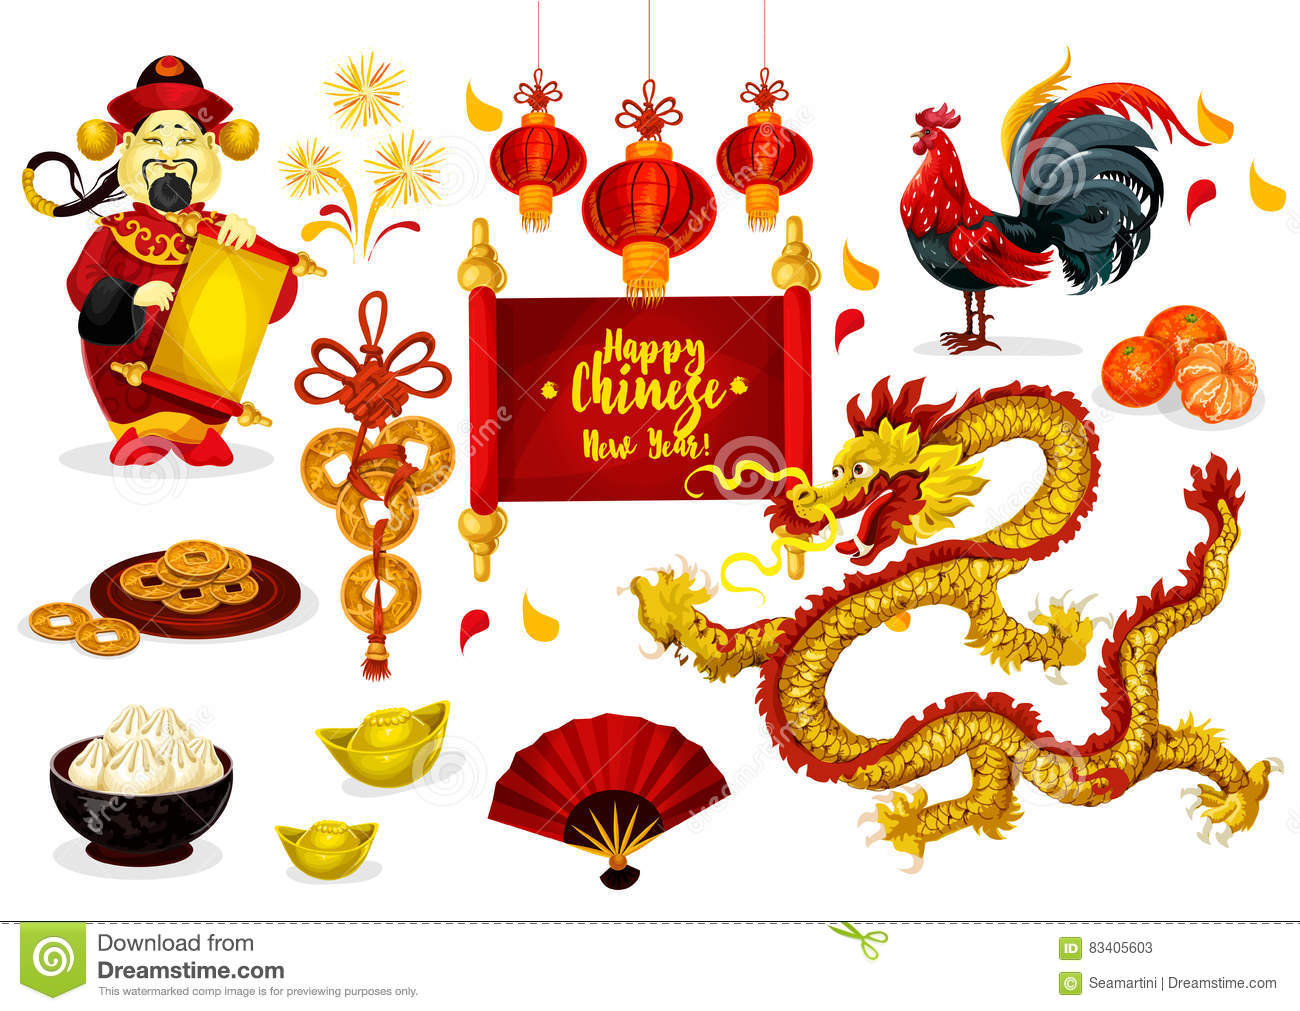 Chinese new year greeting poster design stock vector illustration download chinese new year greeting poster design stock vector illustration of mandarin design m4hsunfo